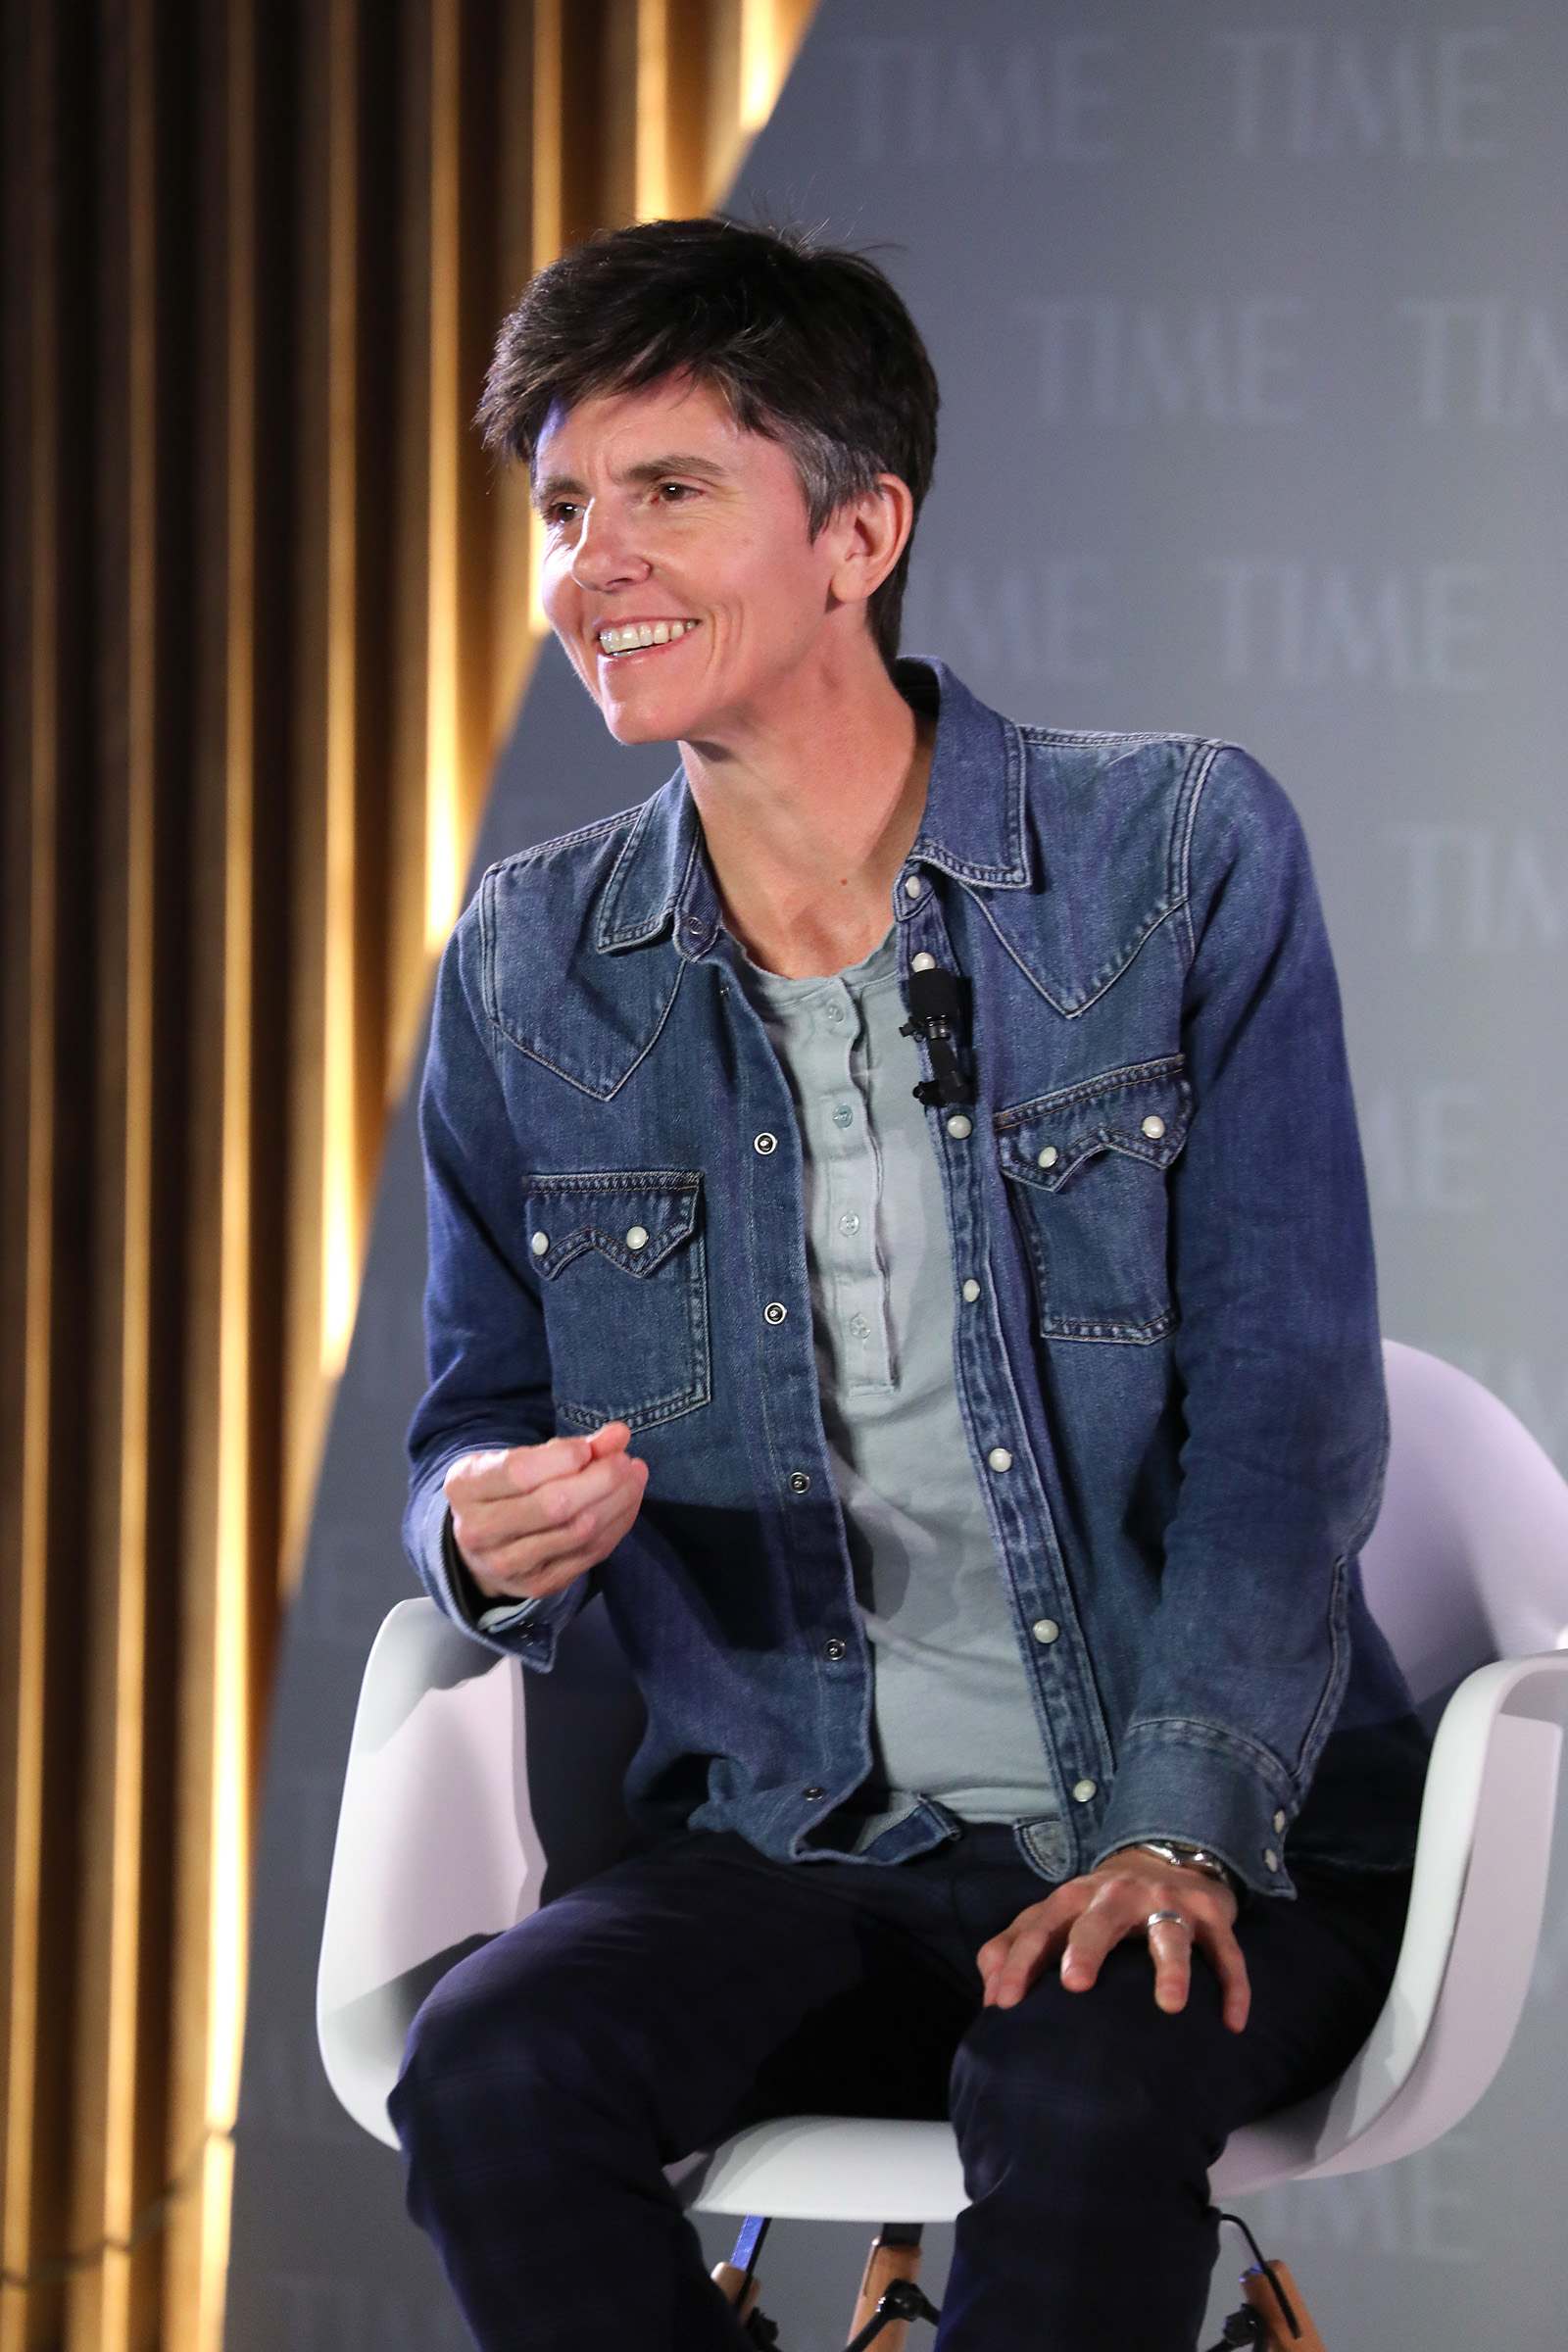 Comedian Tig Notaro speaks onstage during the TIME 100 Health Summit at Pier 17 in New York City on Oct. 17, 2019.